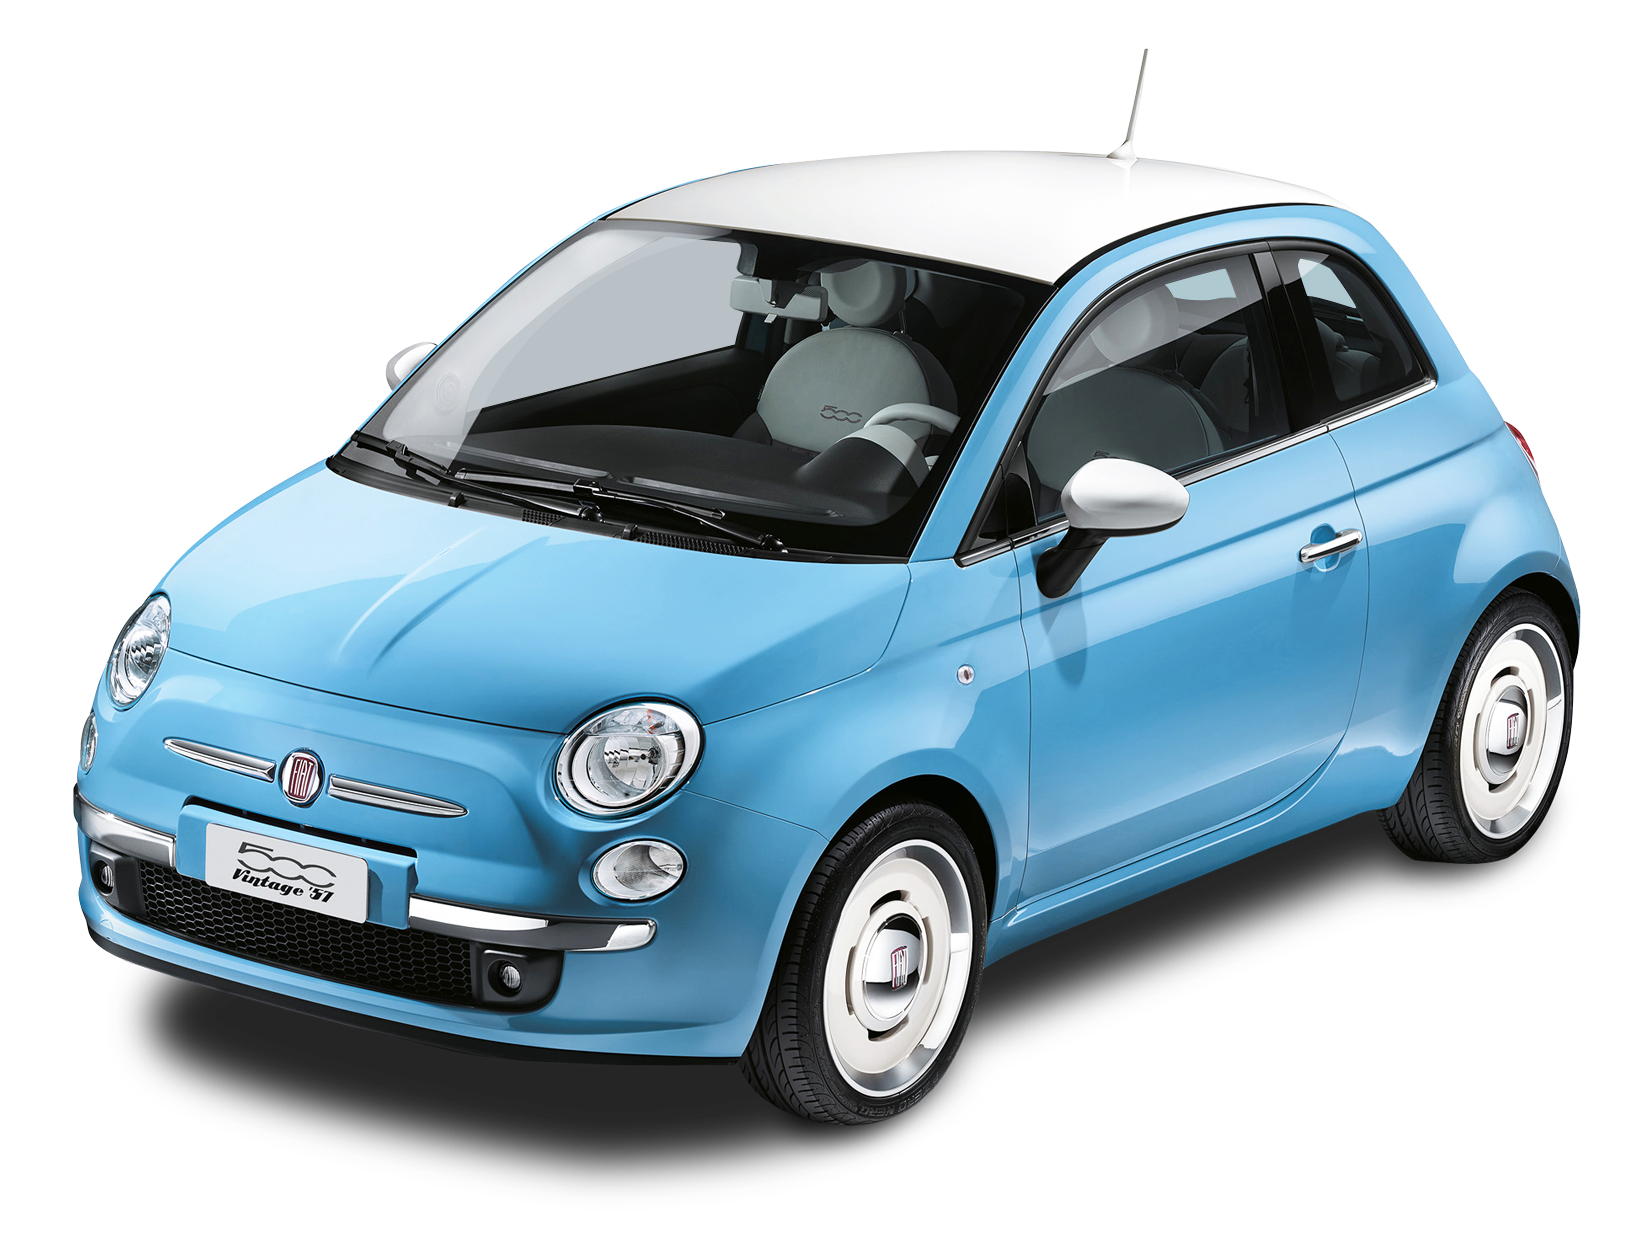 Car clipart background picture freeuse library Blue Fiat 500 Vintage 57 Car PNG Image - PurePNG | Free transparent ... picture freeuse library